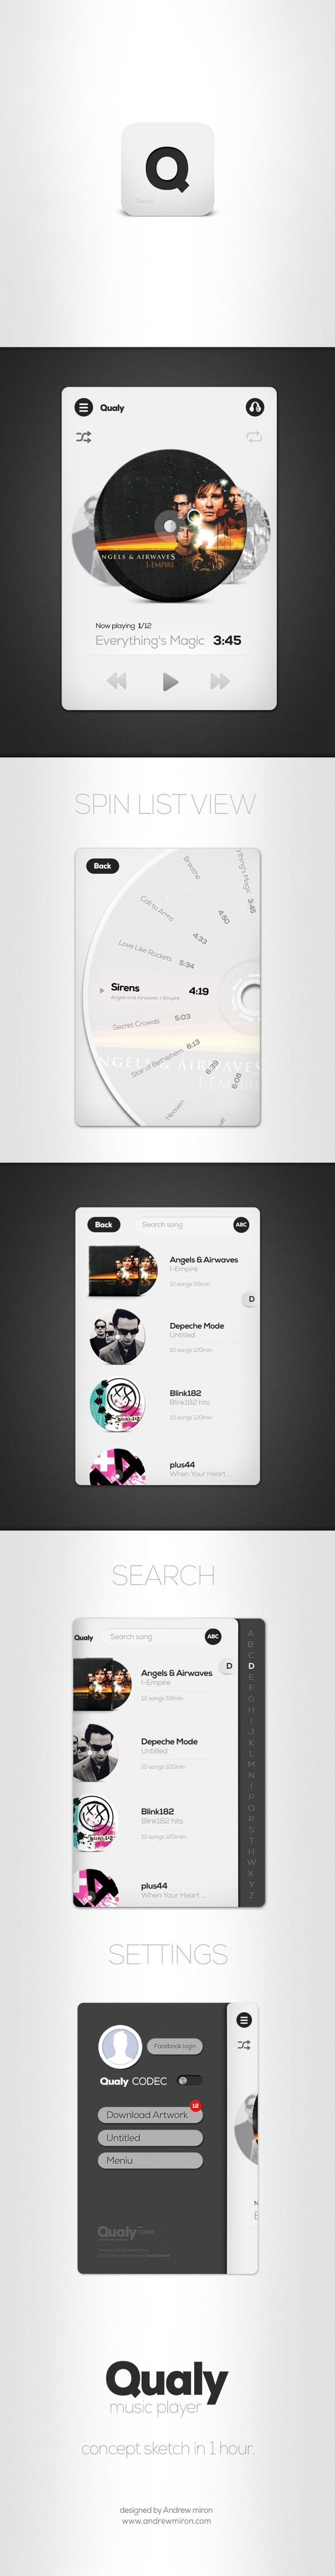 Qualy app. by Andrew Miron, via Behance #ui #mobile